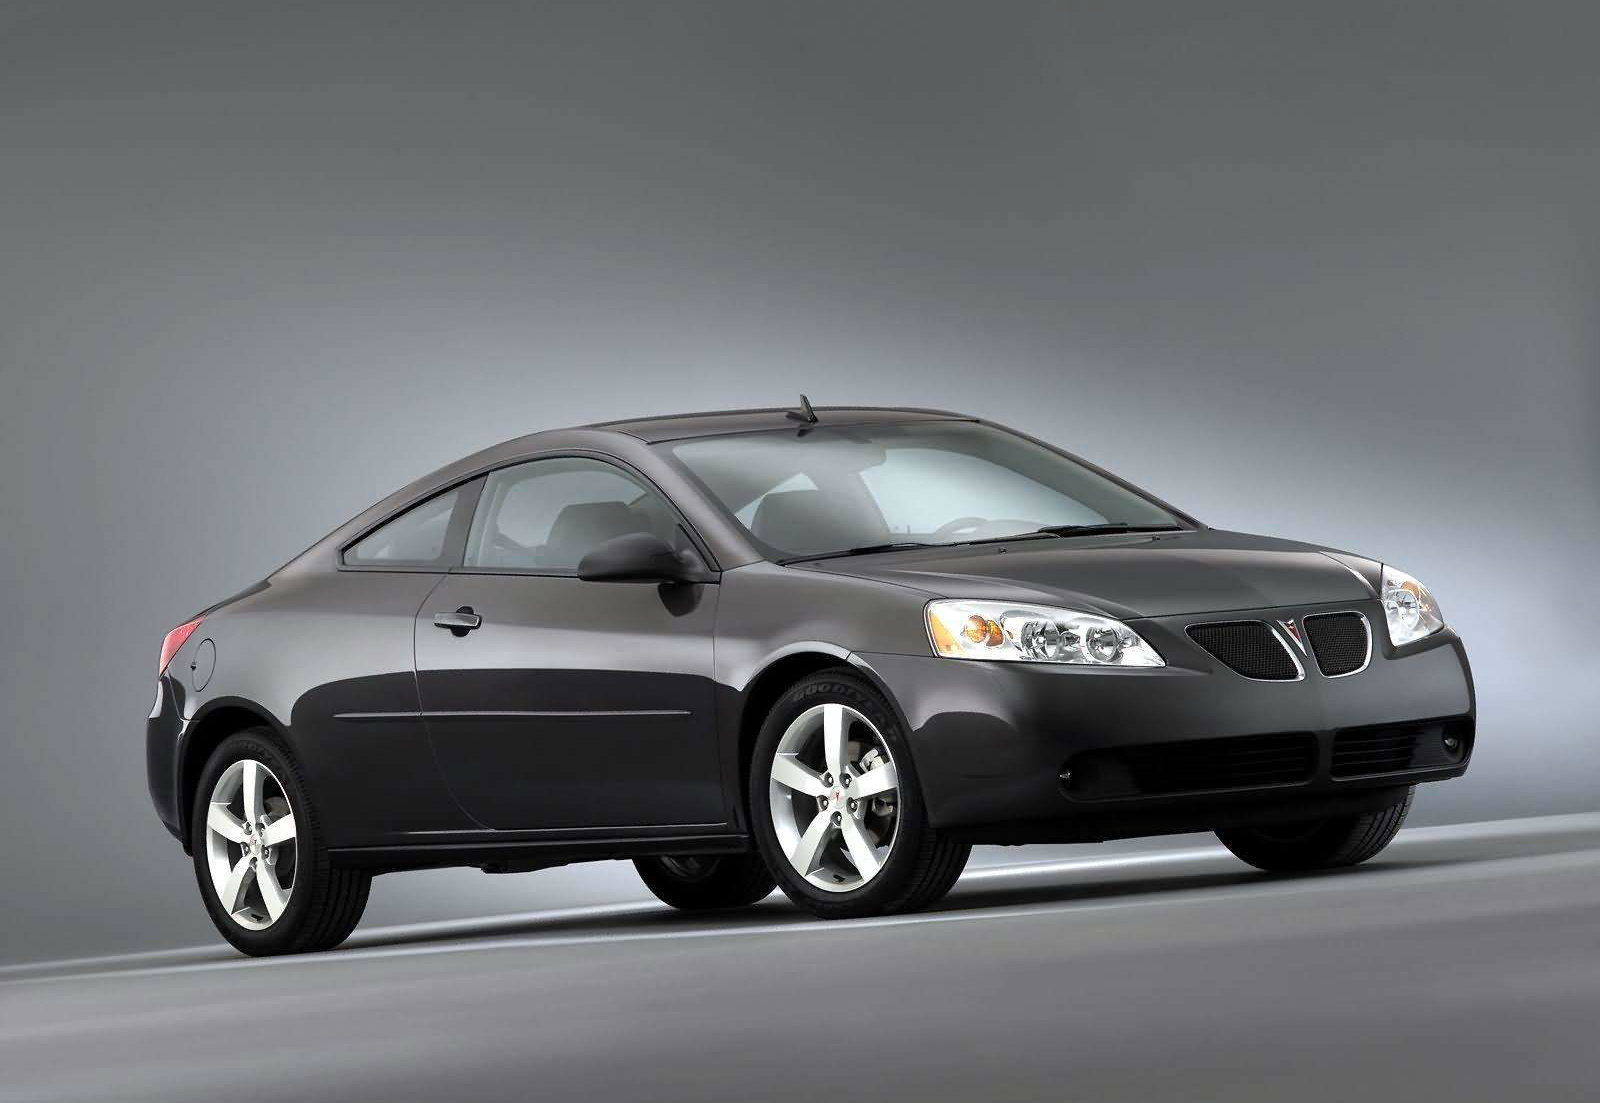 2007 pontiac g6 recalls autos post. Black Bedroom Furniture Sets. Home Design Ideas